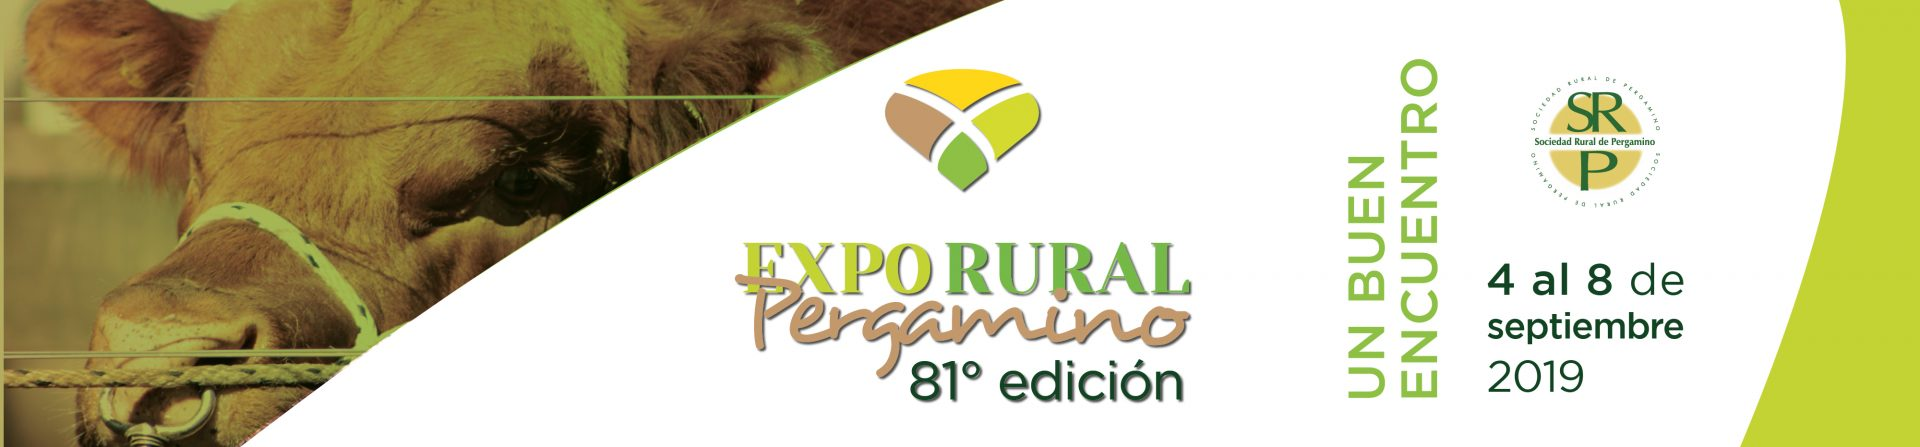 Banner_expo_1920x447